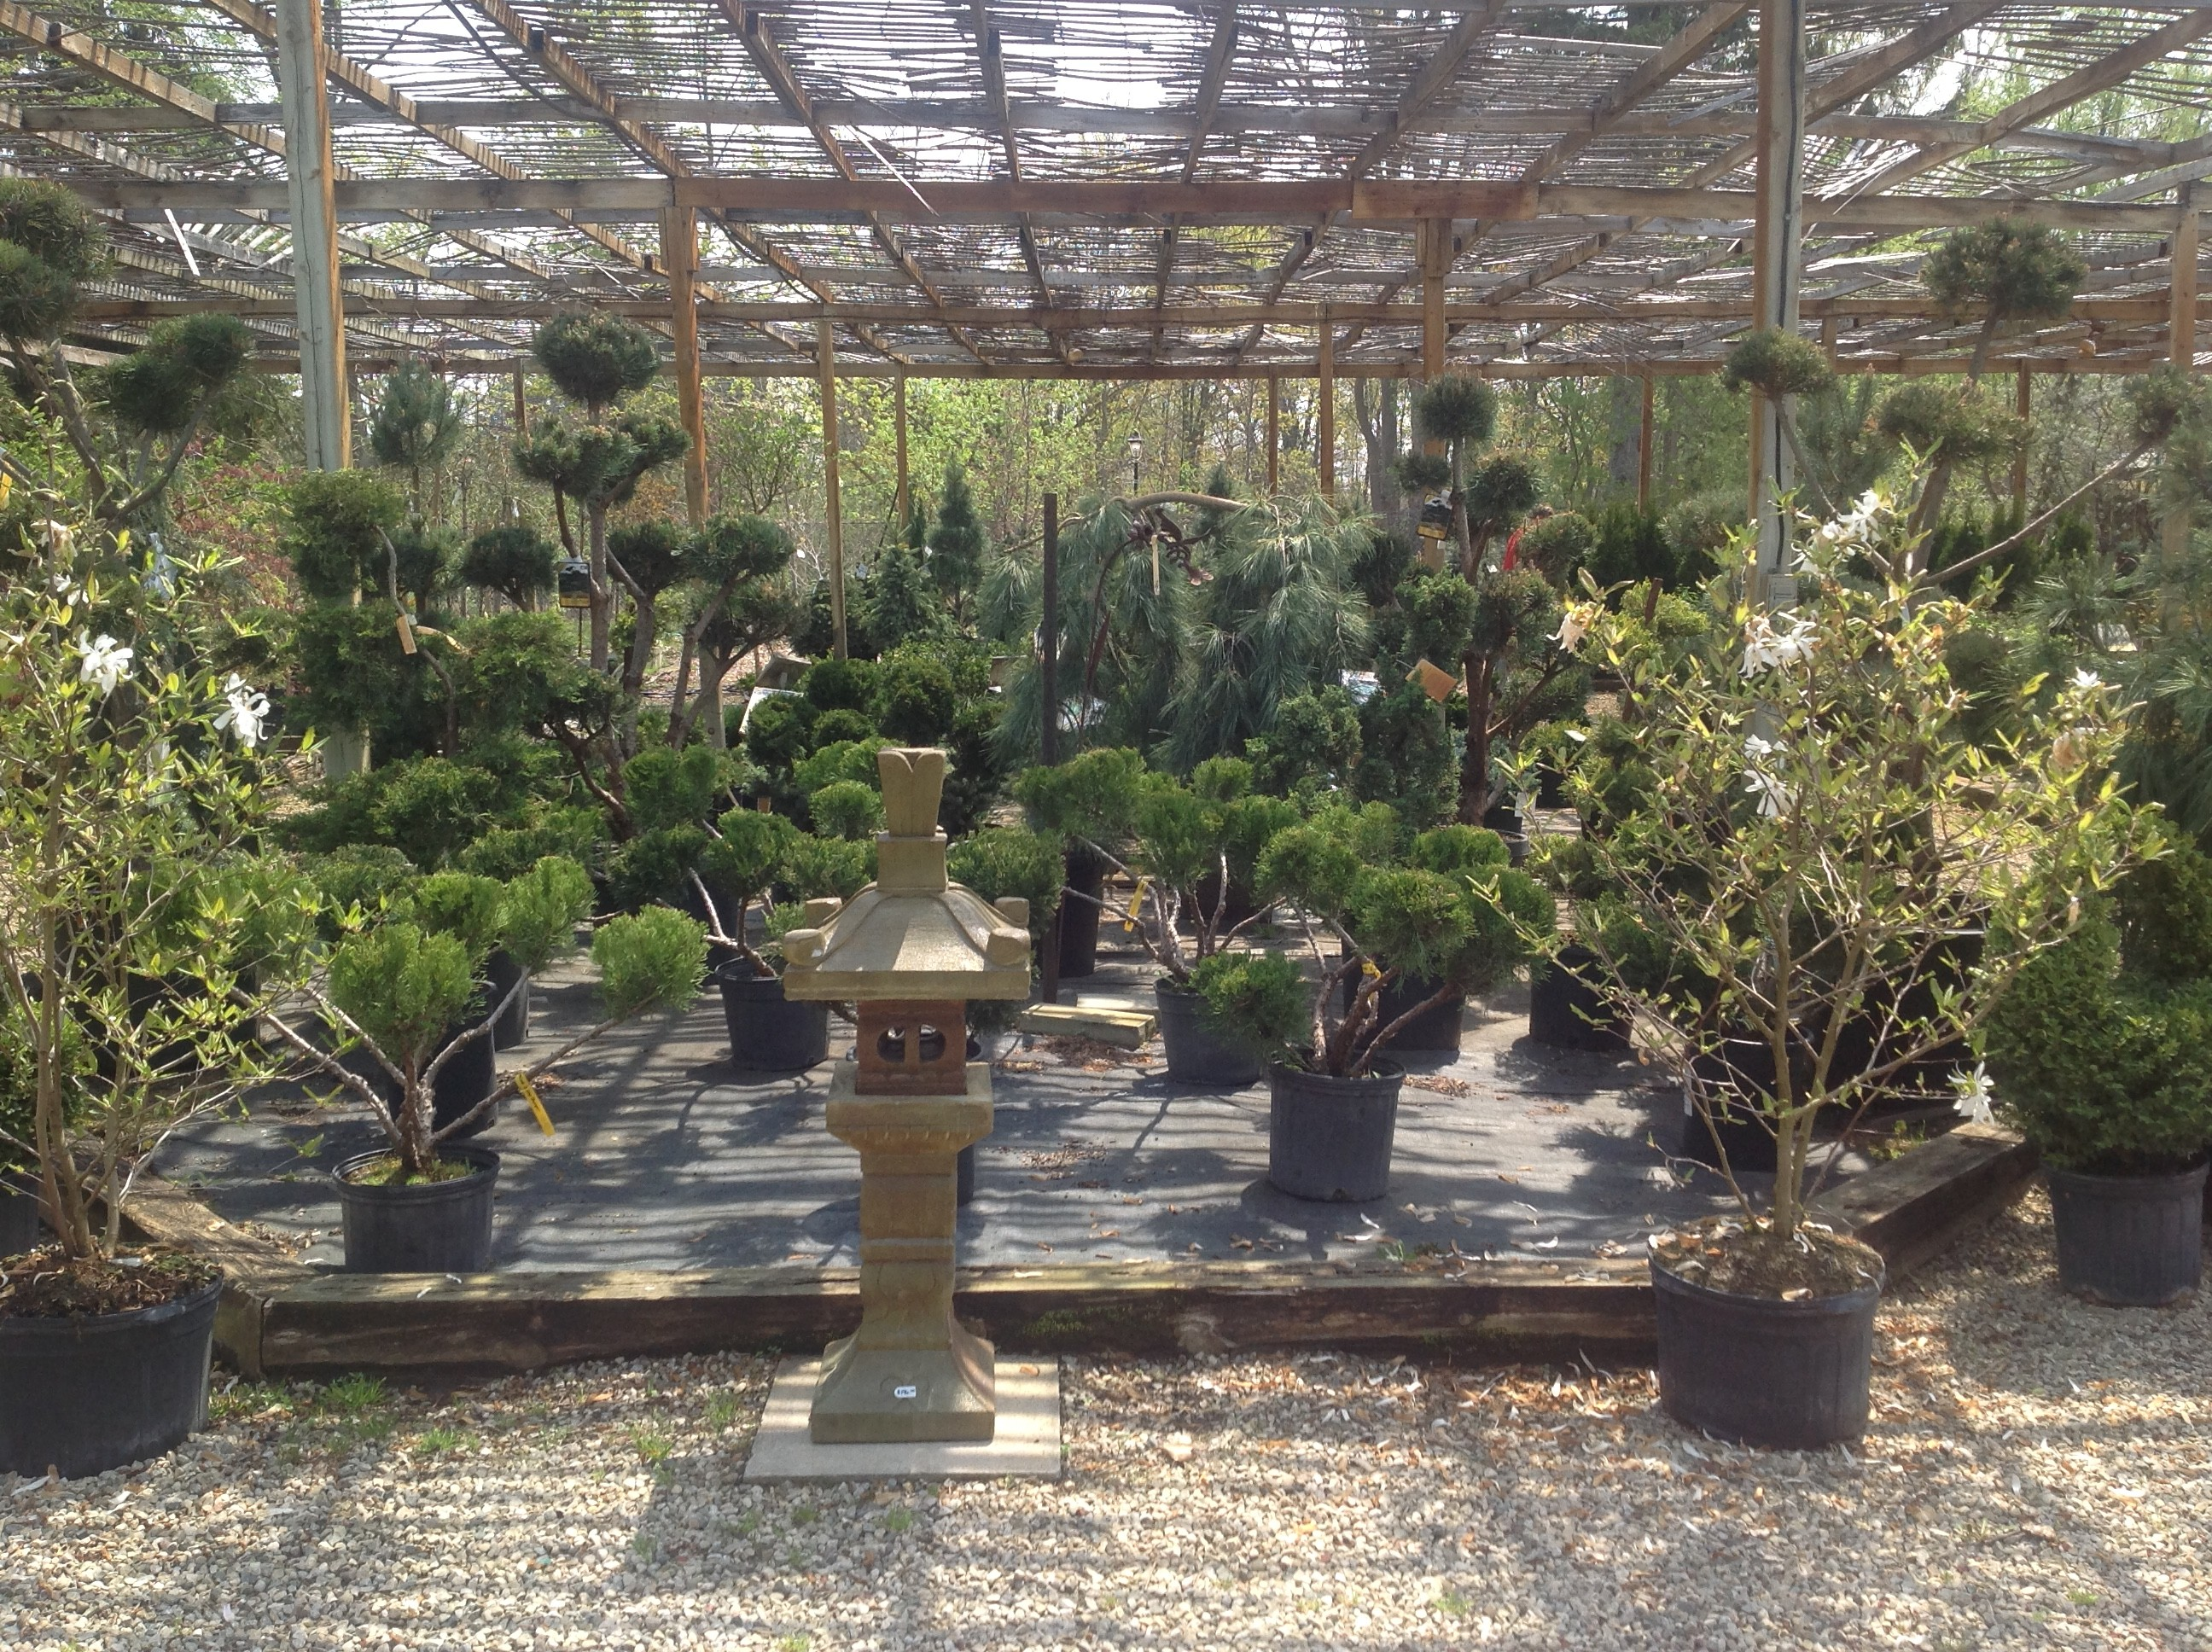 trees for sale, tree nursery, london trees for sale